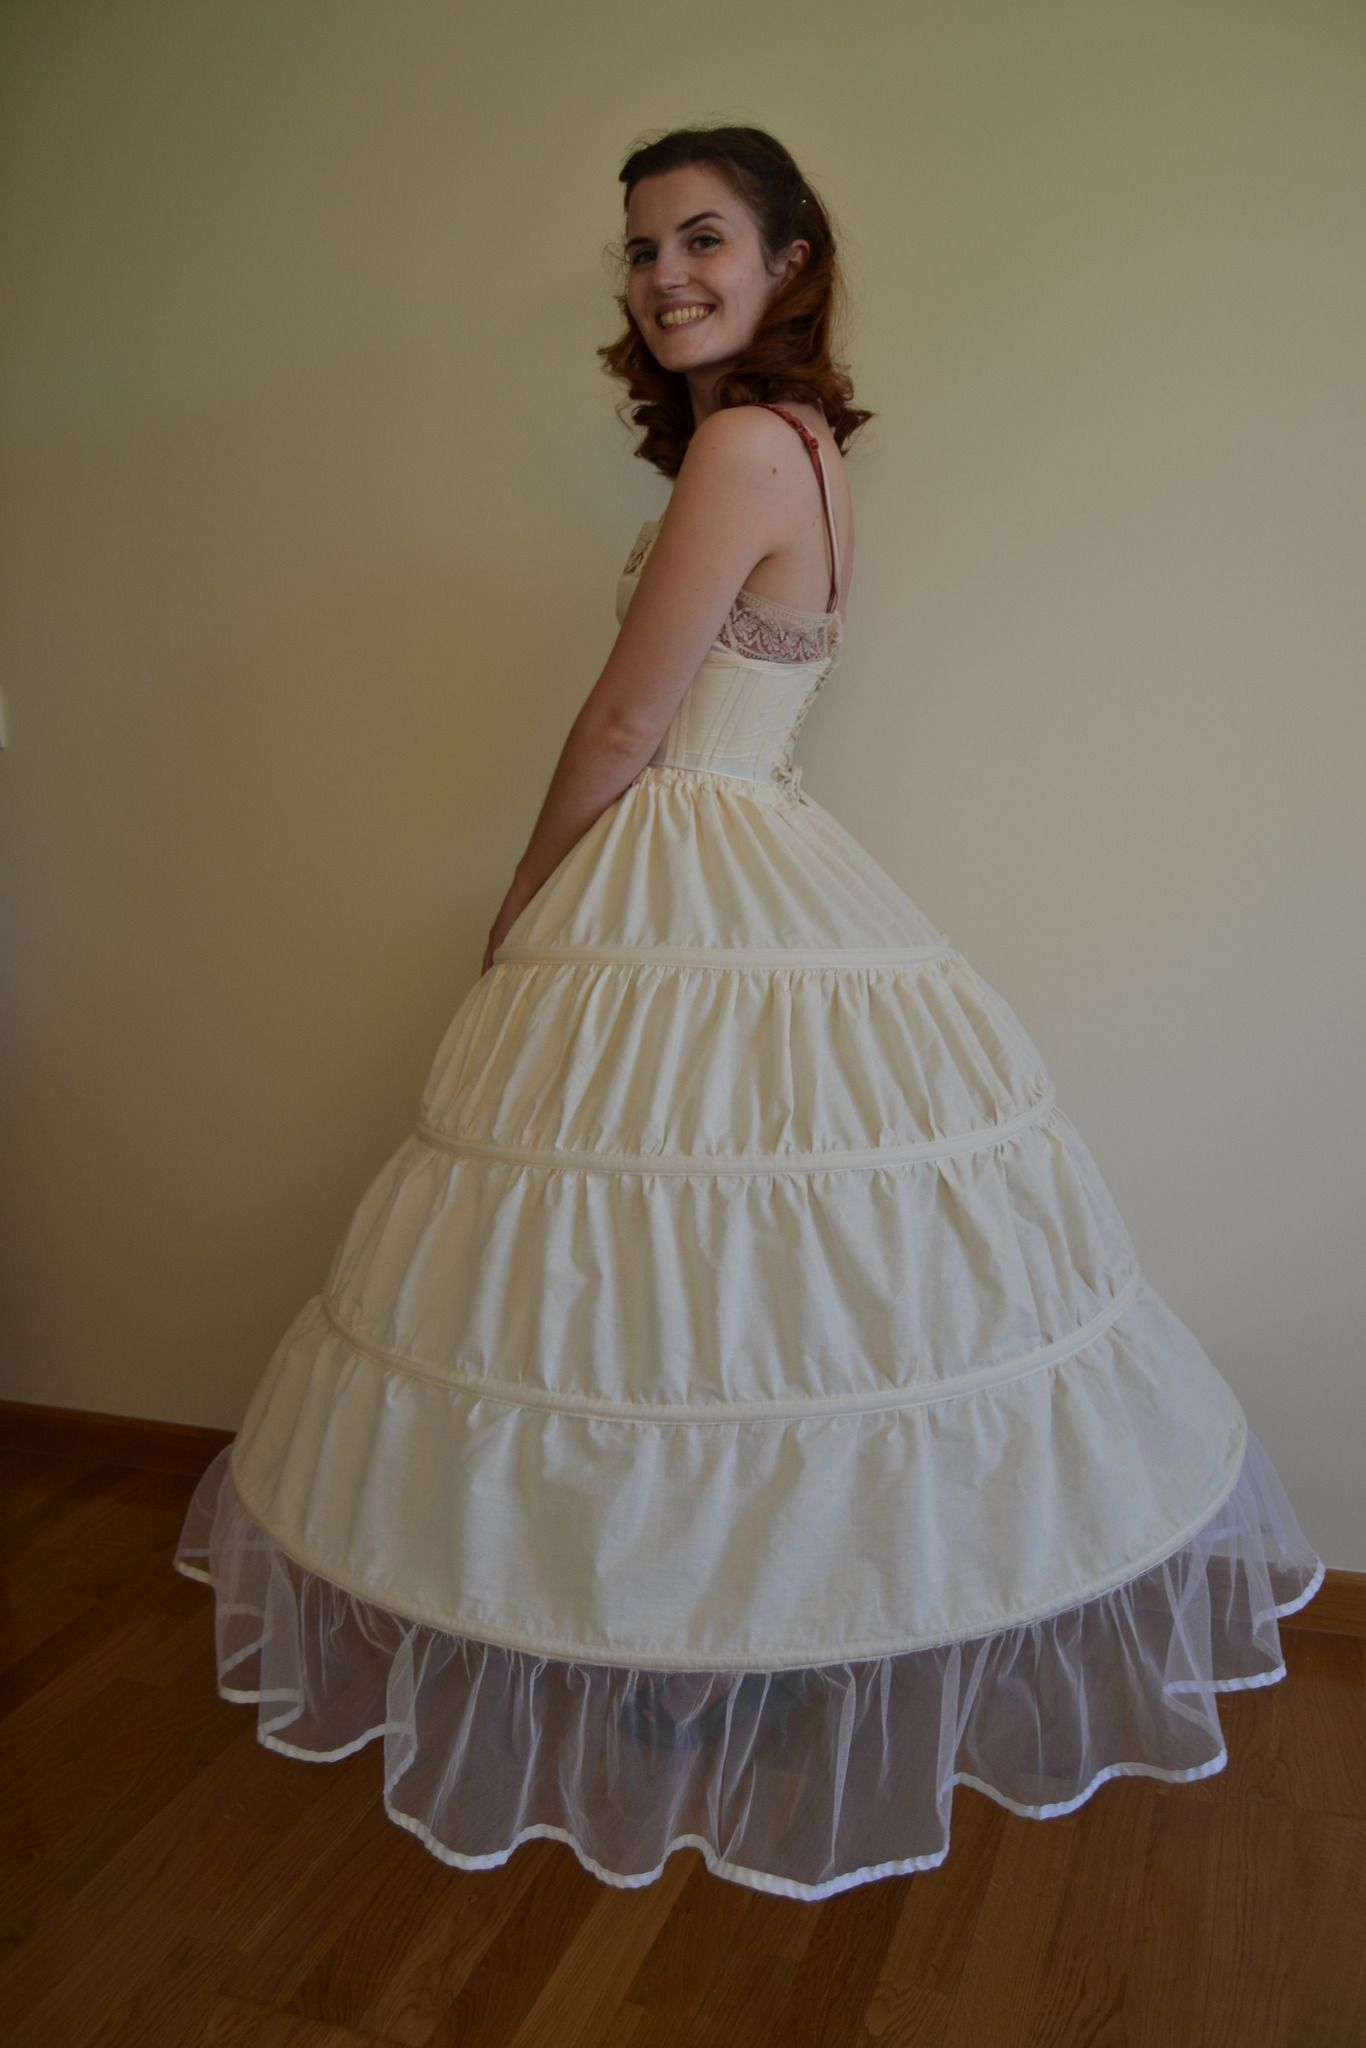 2d9b0eff44 How to make a hoop skirt (crinoline) . Free tutorial with pictures on how  to make a costume in under 120 minutes by sewing and dressmaking with  ribbon, ...